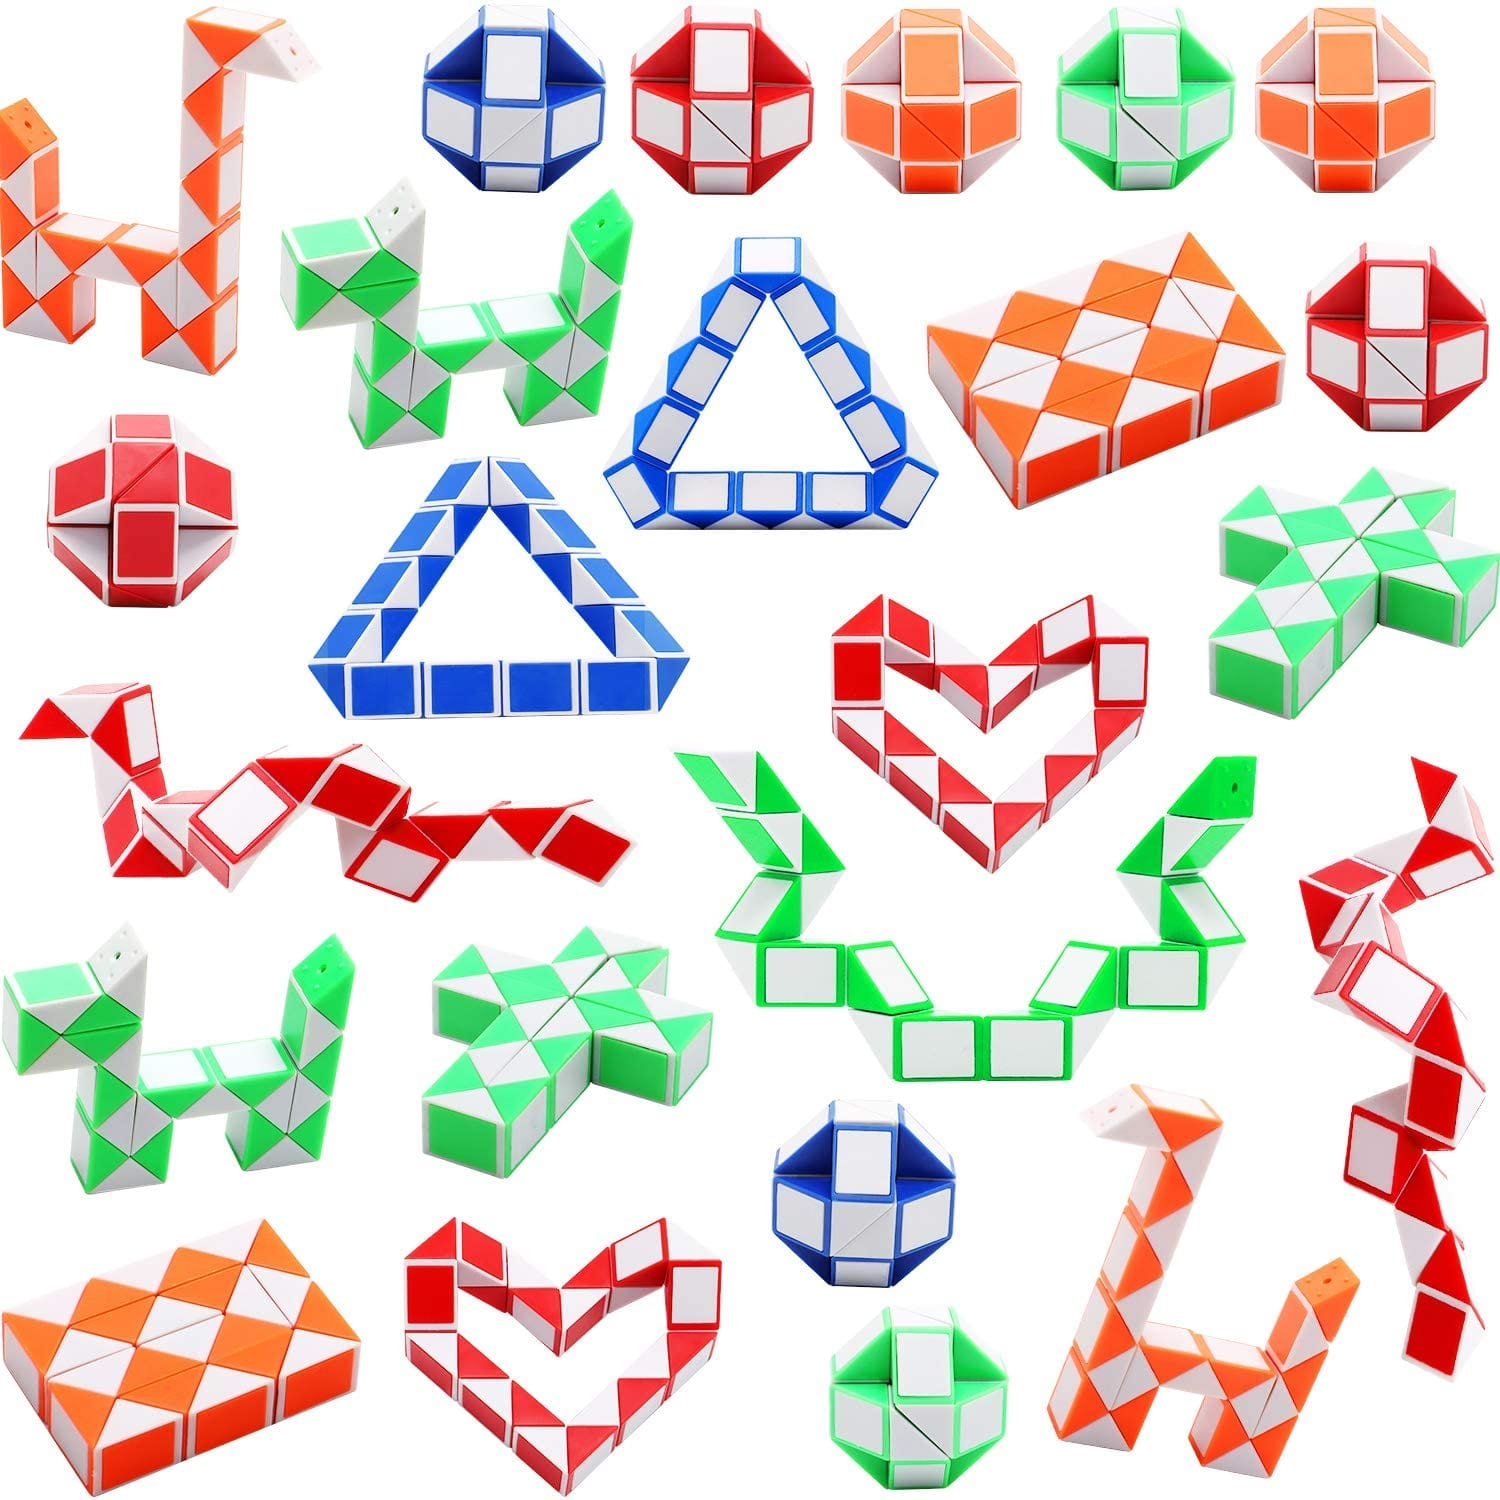 snake puzzles